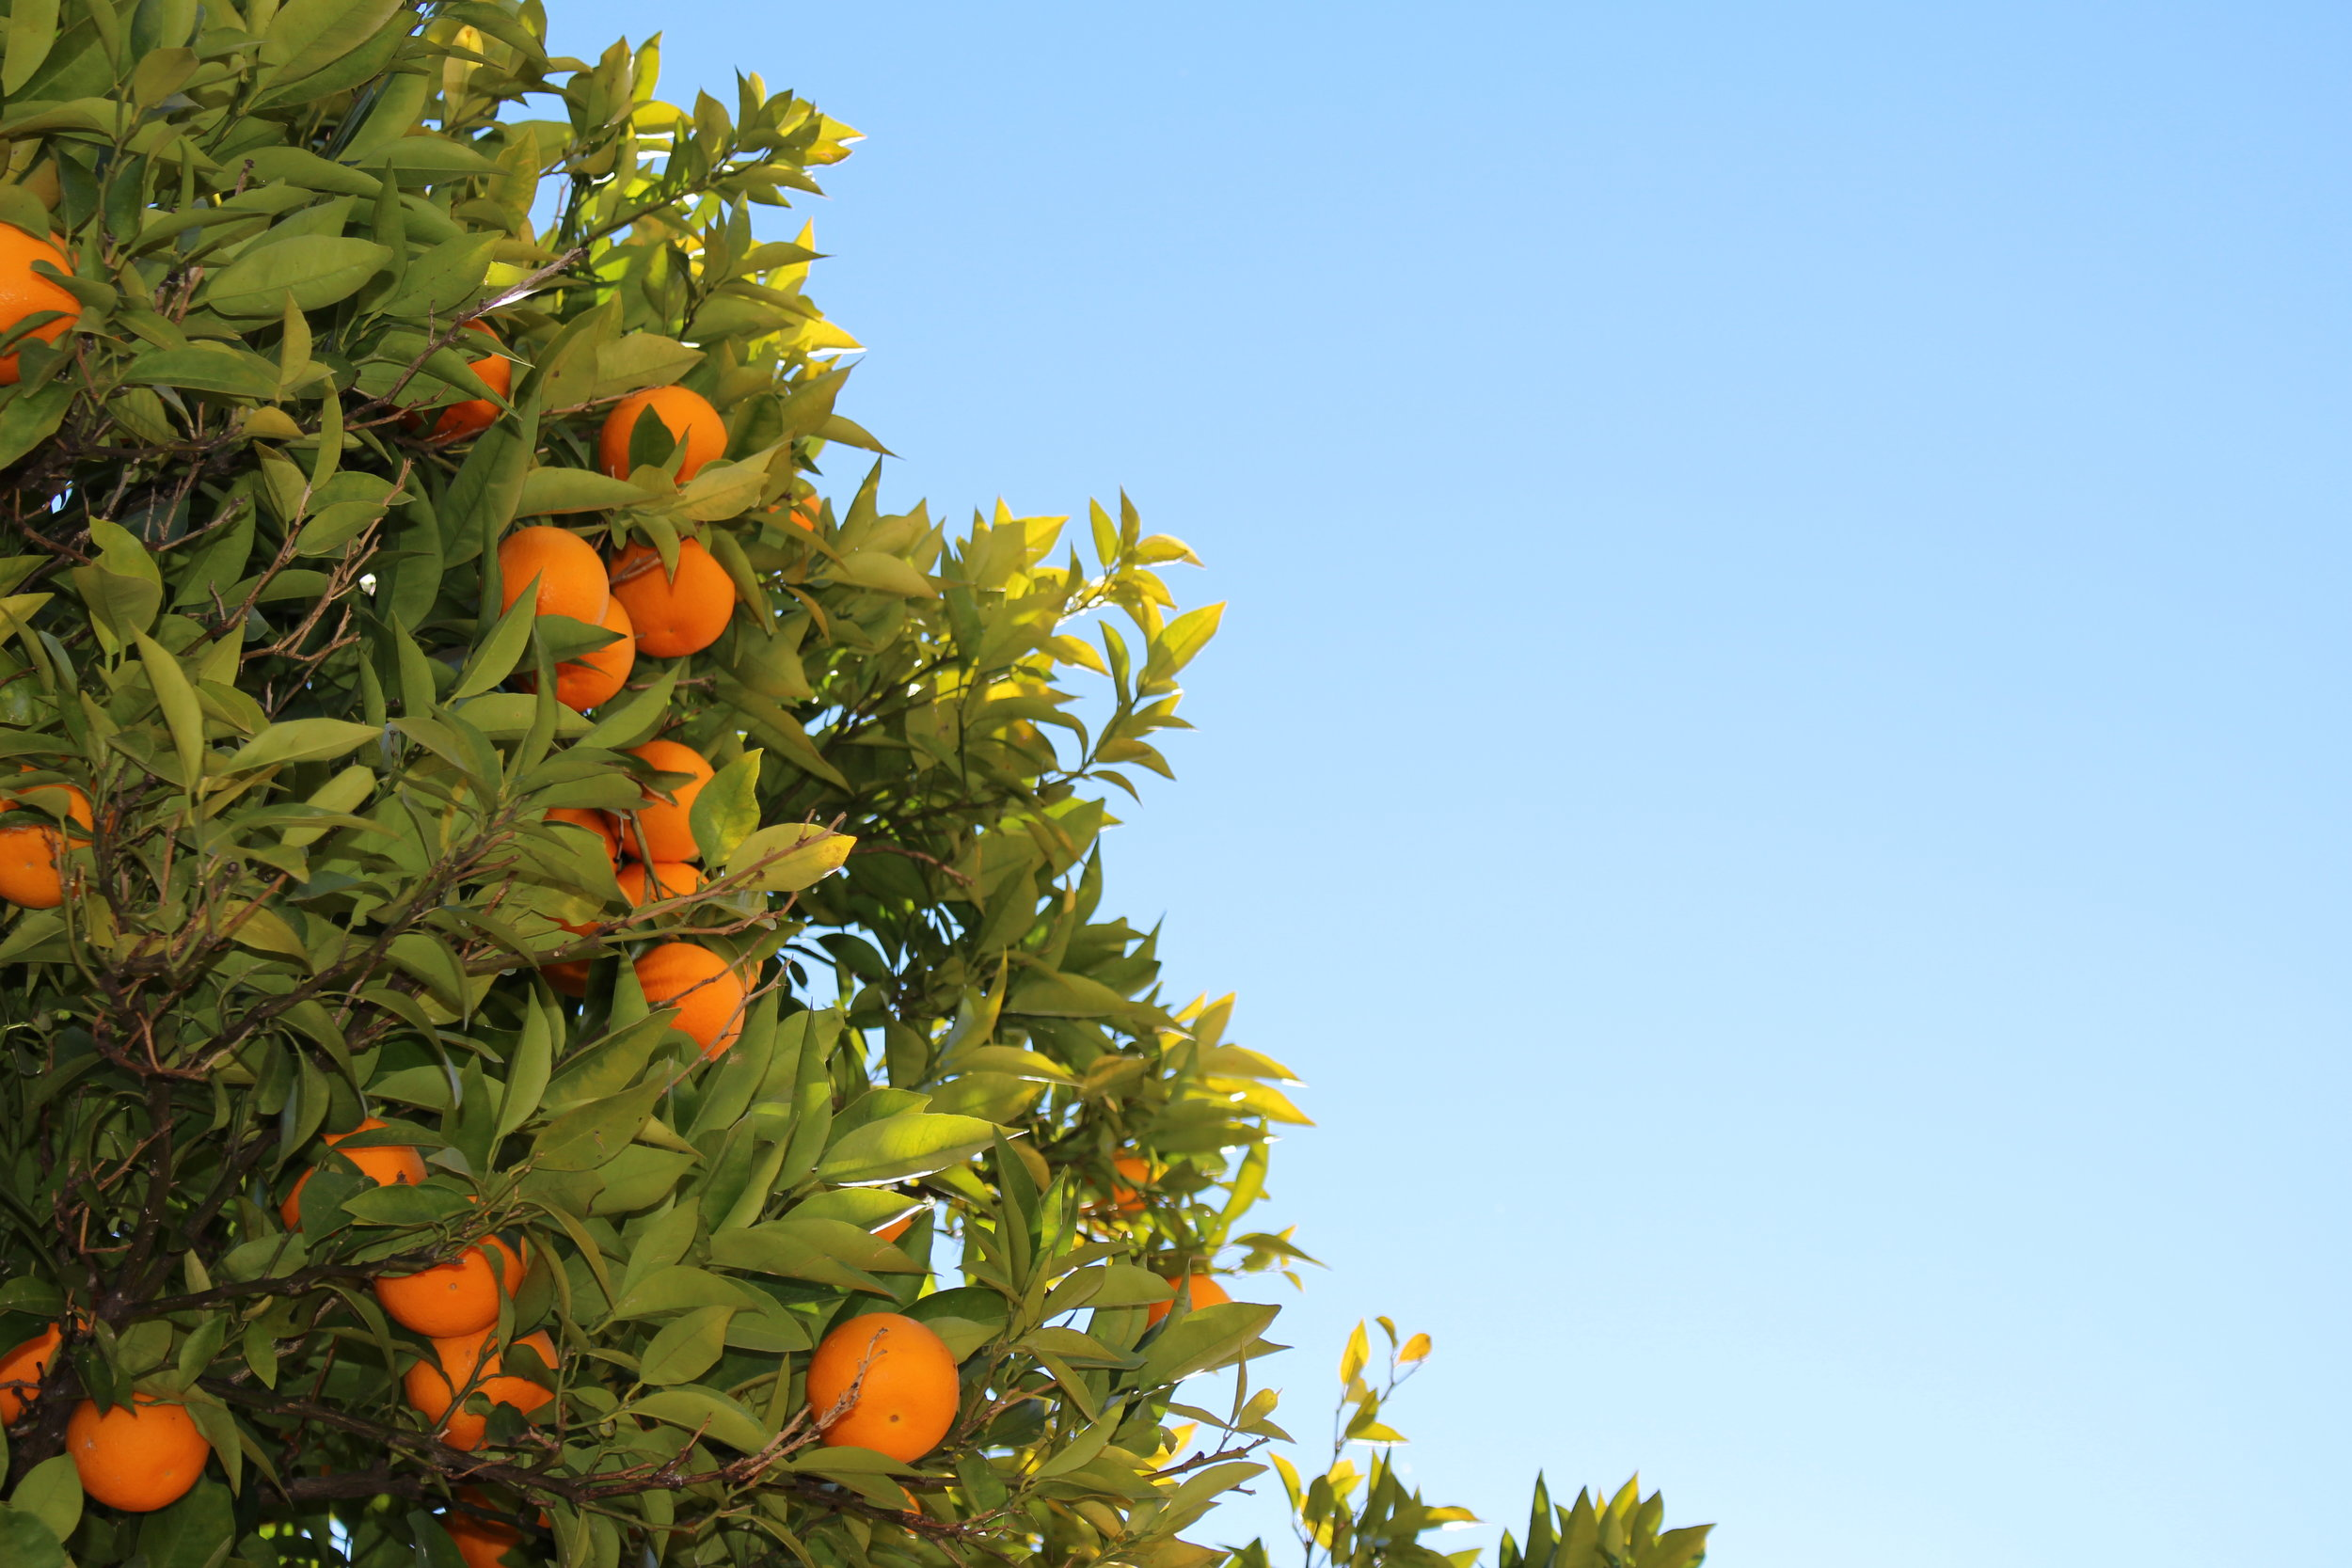 One of my favourite things about to Sevilla… the orange trees